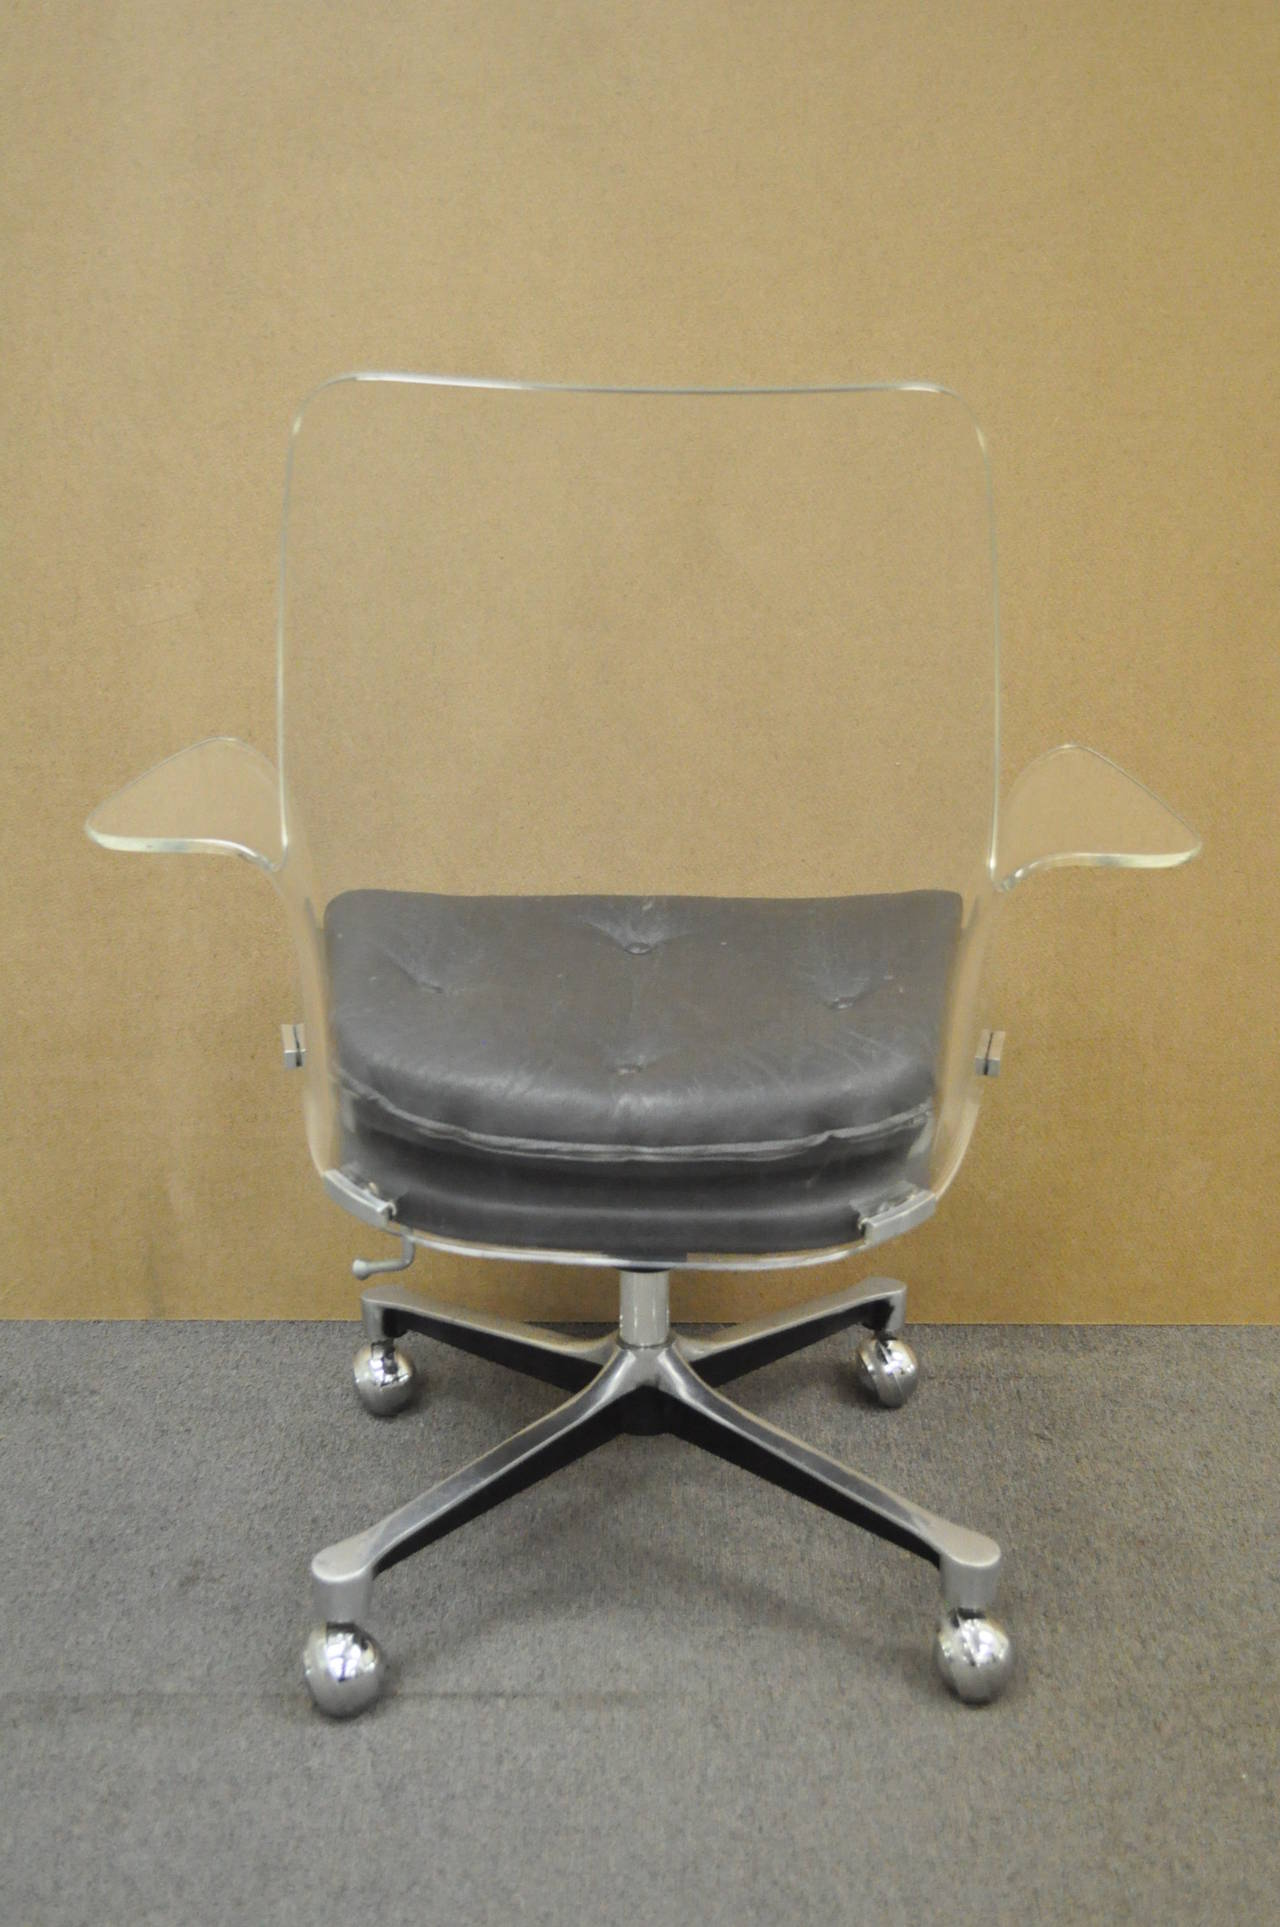 Acrylic Chair 1960s Sculpted Lucite Swivel Desk Chair After Vladimir